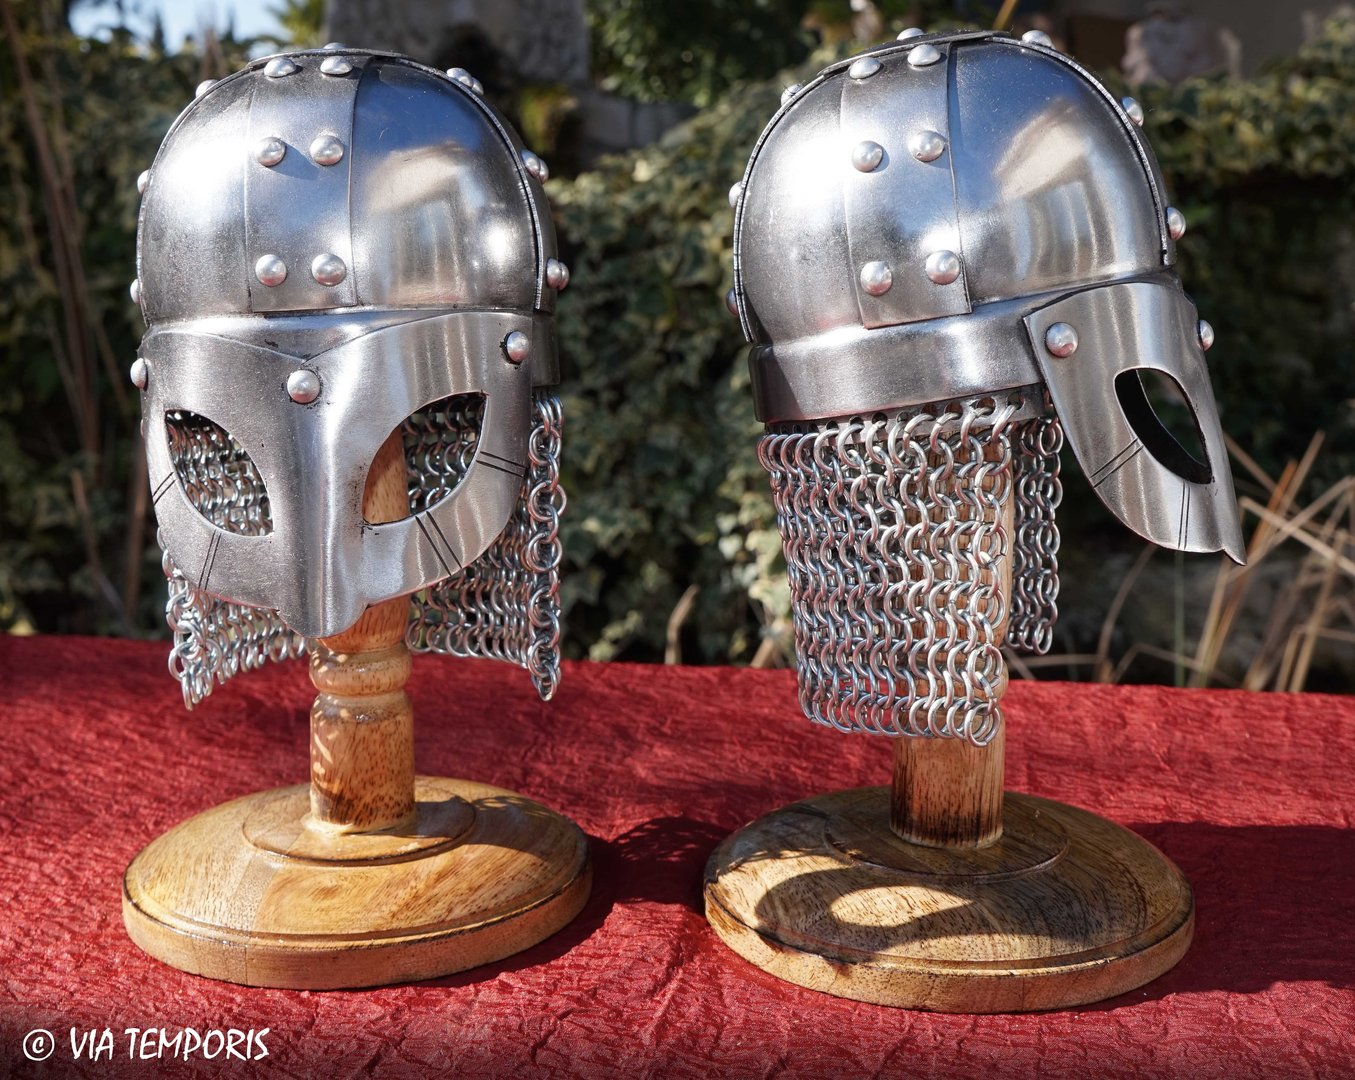 MINI HELMET VIKING WITH CHAINMAIL